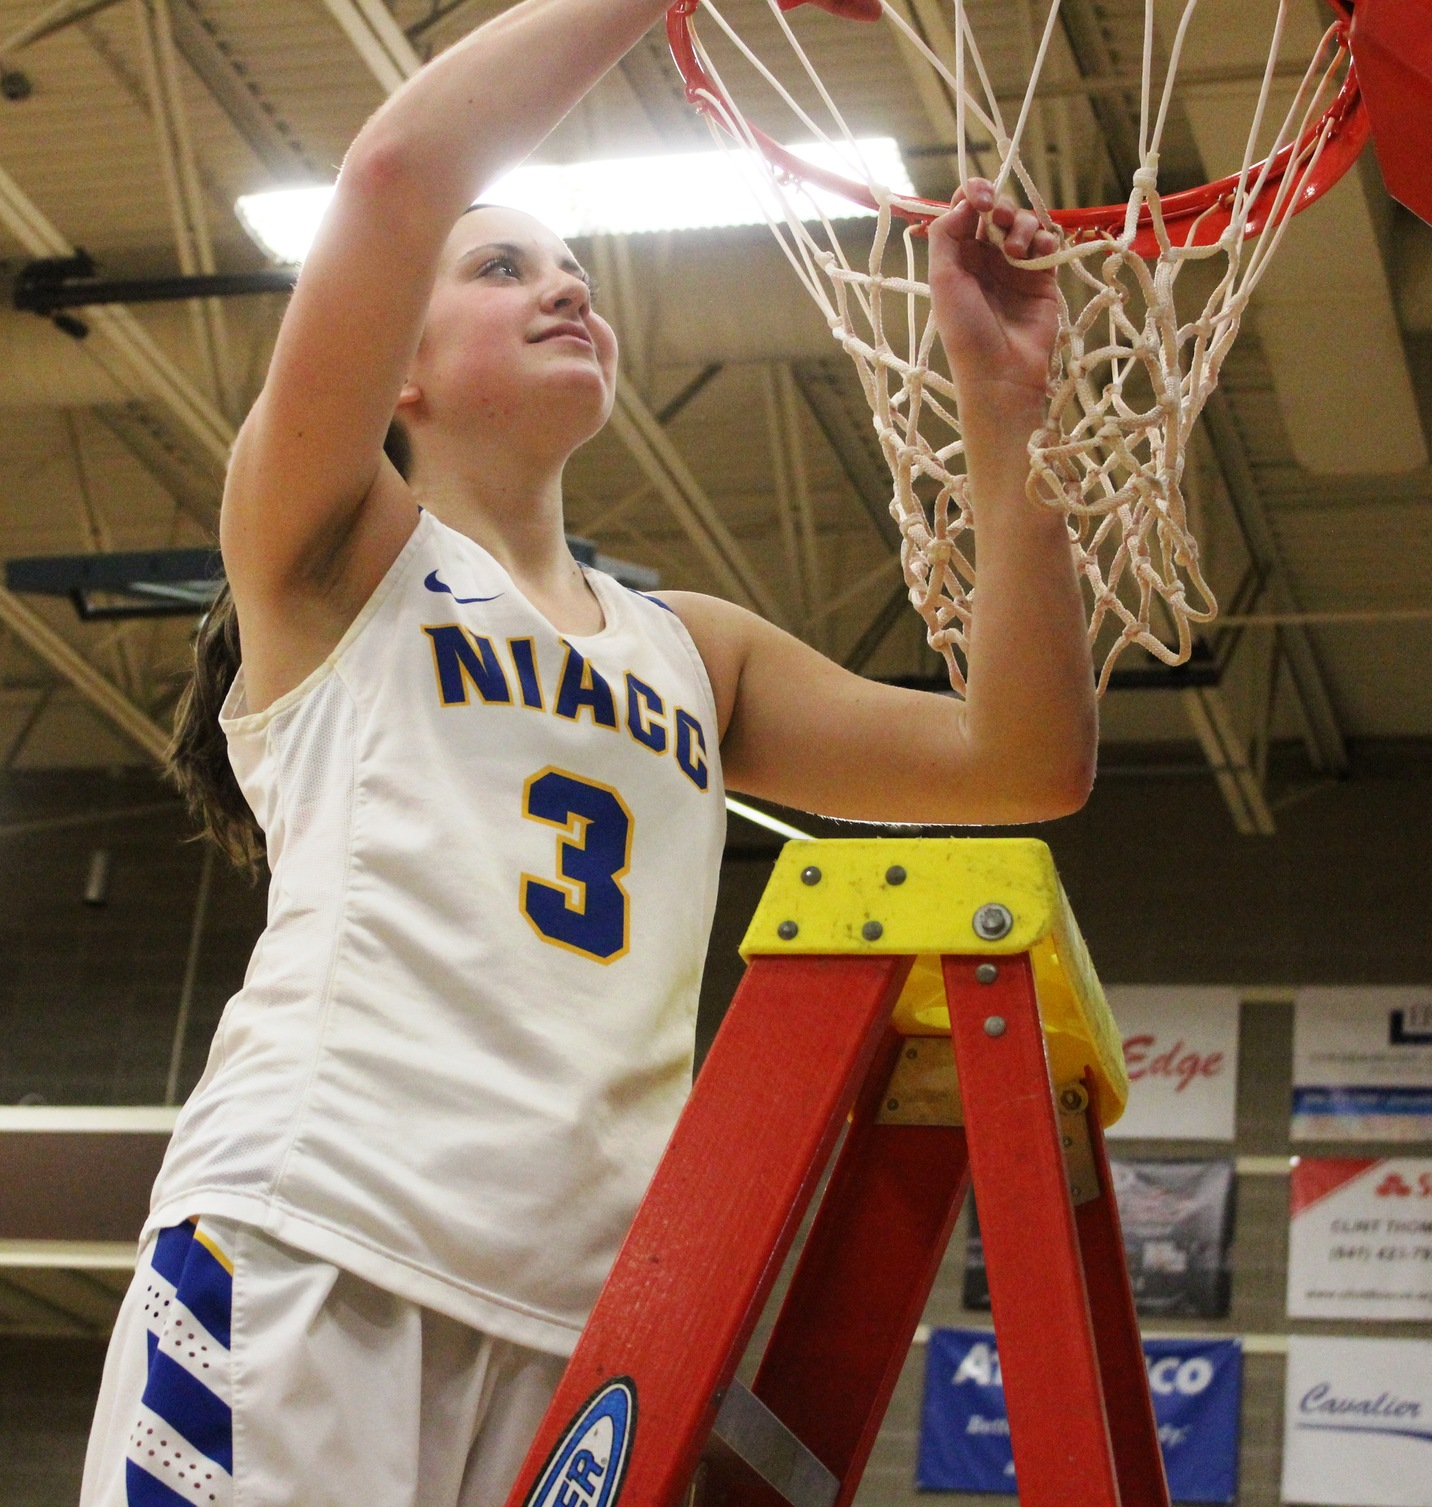 NIACC's Mandy Willems takes her turn cutting down the net after winning the regional title on Sunday in the NIACC gym.